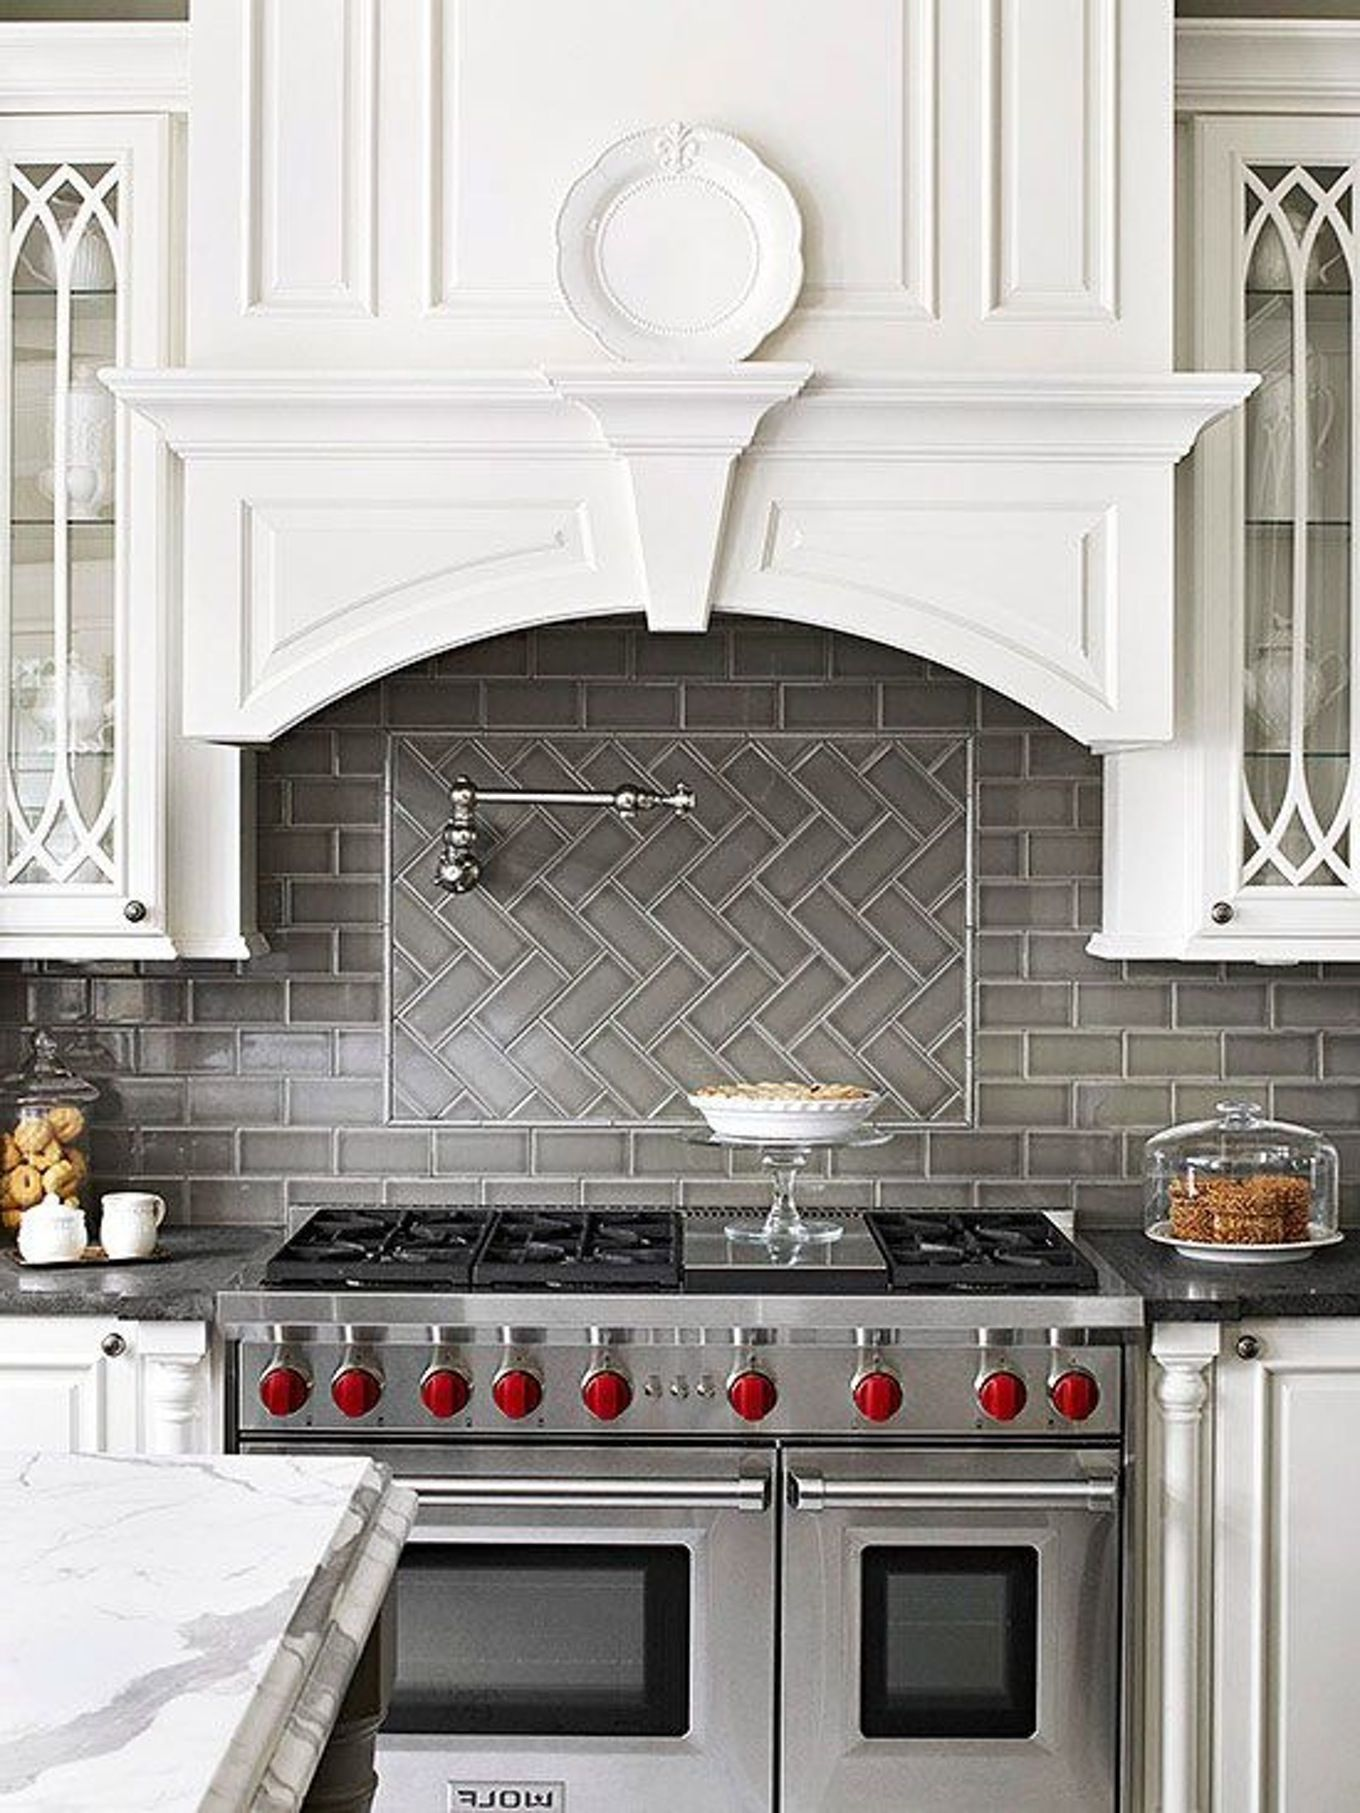 Interesting Kitchen Decorating Ideas with Elegant Lowes Tile ... on lowes subway tile, lowes small kitchen design, lowes kitchen islands, lowes wall tile, lowes kitchen lights, lowes kitchen remodeling, lowes vinyl backsplash, lowes kitchen floor, lowes kitchen planner, lowes kitchen table, lowes porcelain, lowes kitchen counter tile, lowes kitchen sink, lowes kitchen pantry, lowes kitchen lighting ideas, lowes kitchen colors, lowes kitchen microwave, lowes outdoor kitchen, lowes kitchen wallpaper, lowes metal,